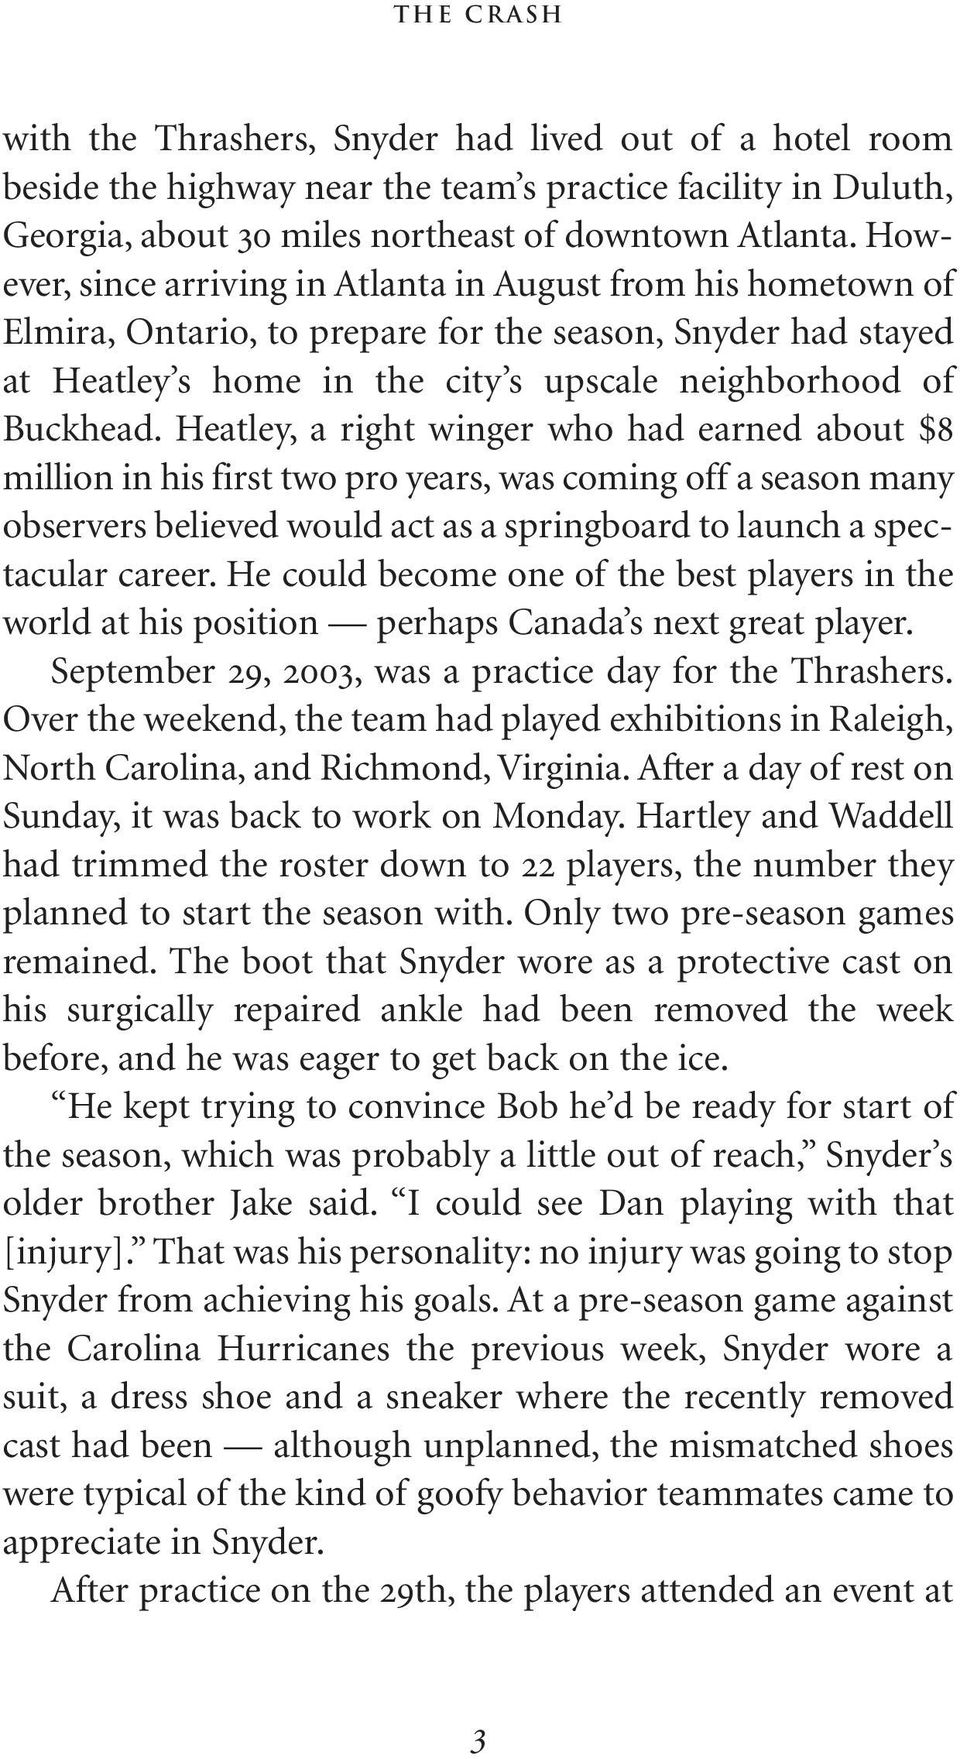 Heatley, a right winger who had earned about $8 million in his first two pro years, was coming off a season many observers believed would act as a springboard to launch a spectacular career.